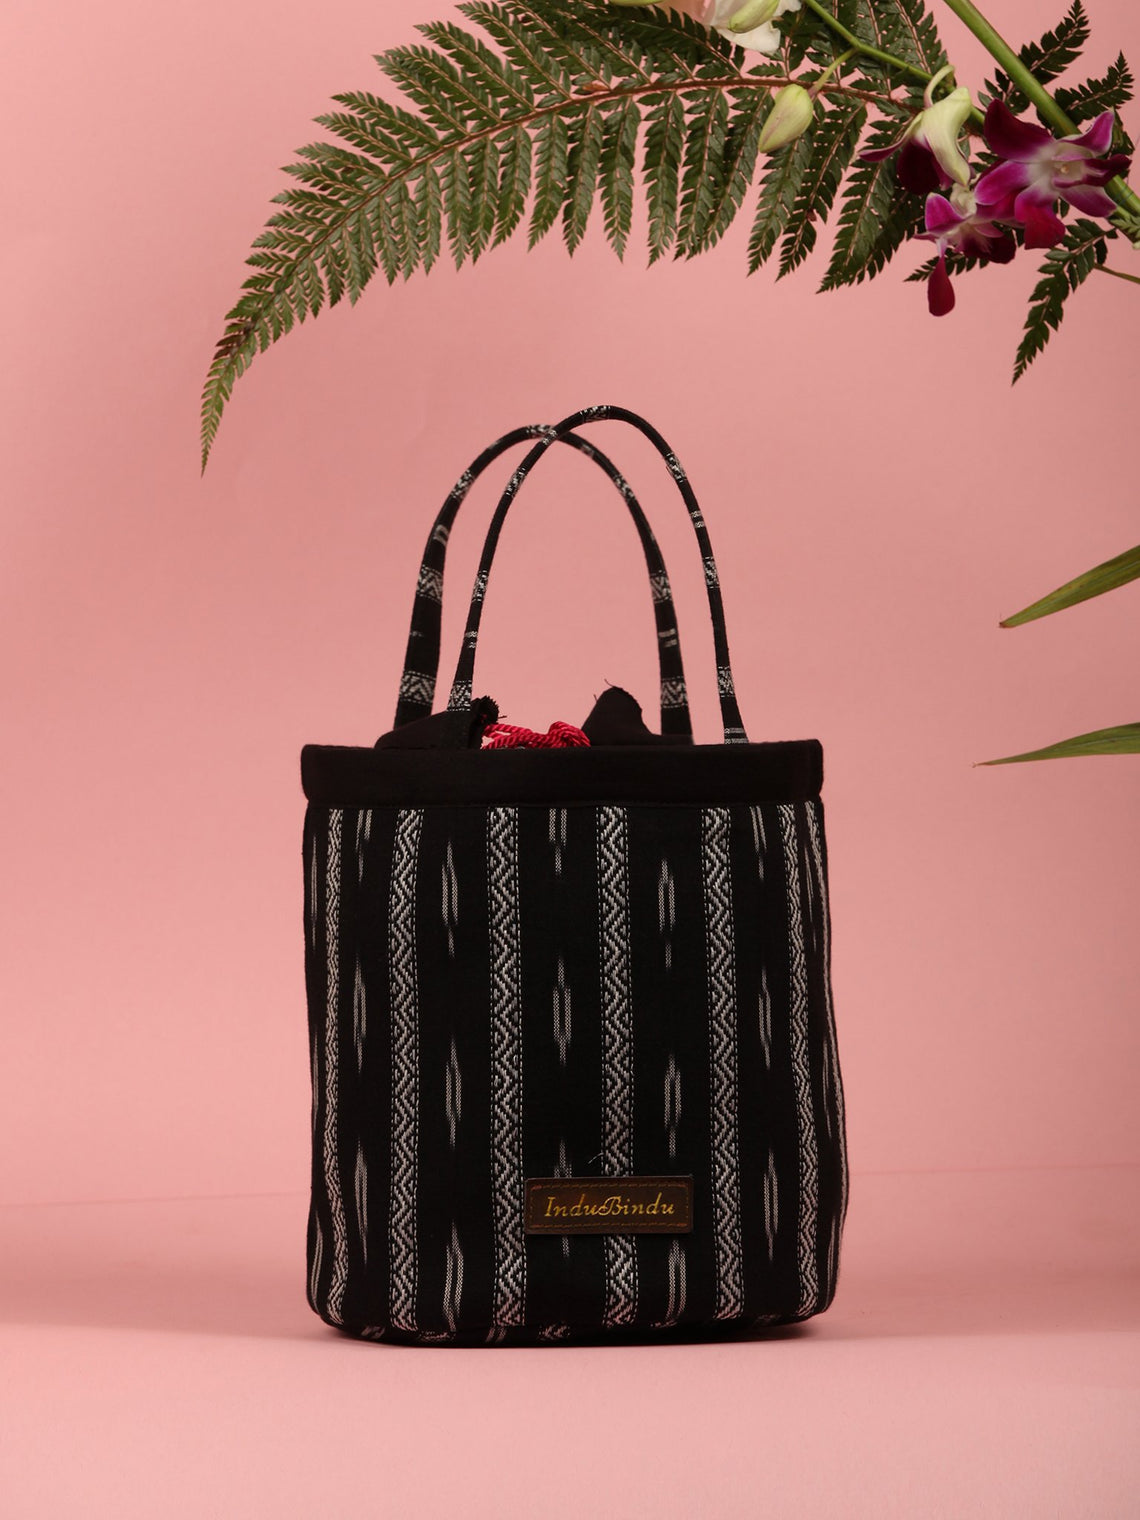 Black White Ikat Bucket Utility Bag - B0206